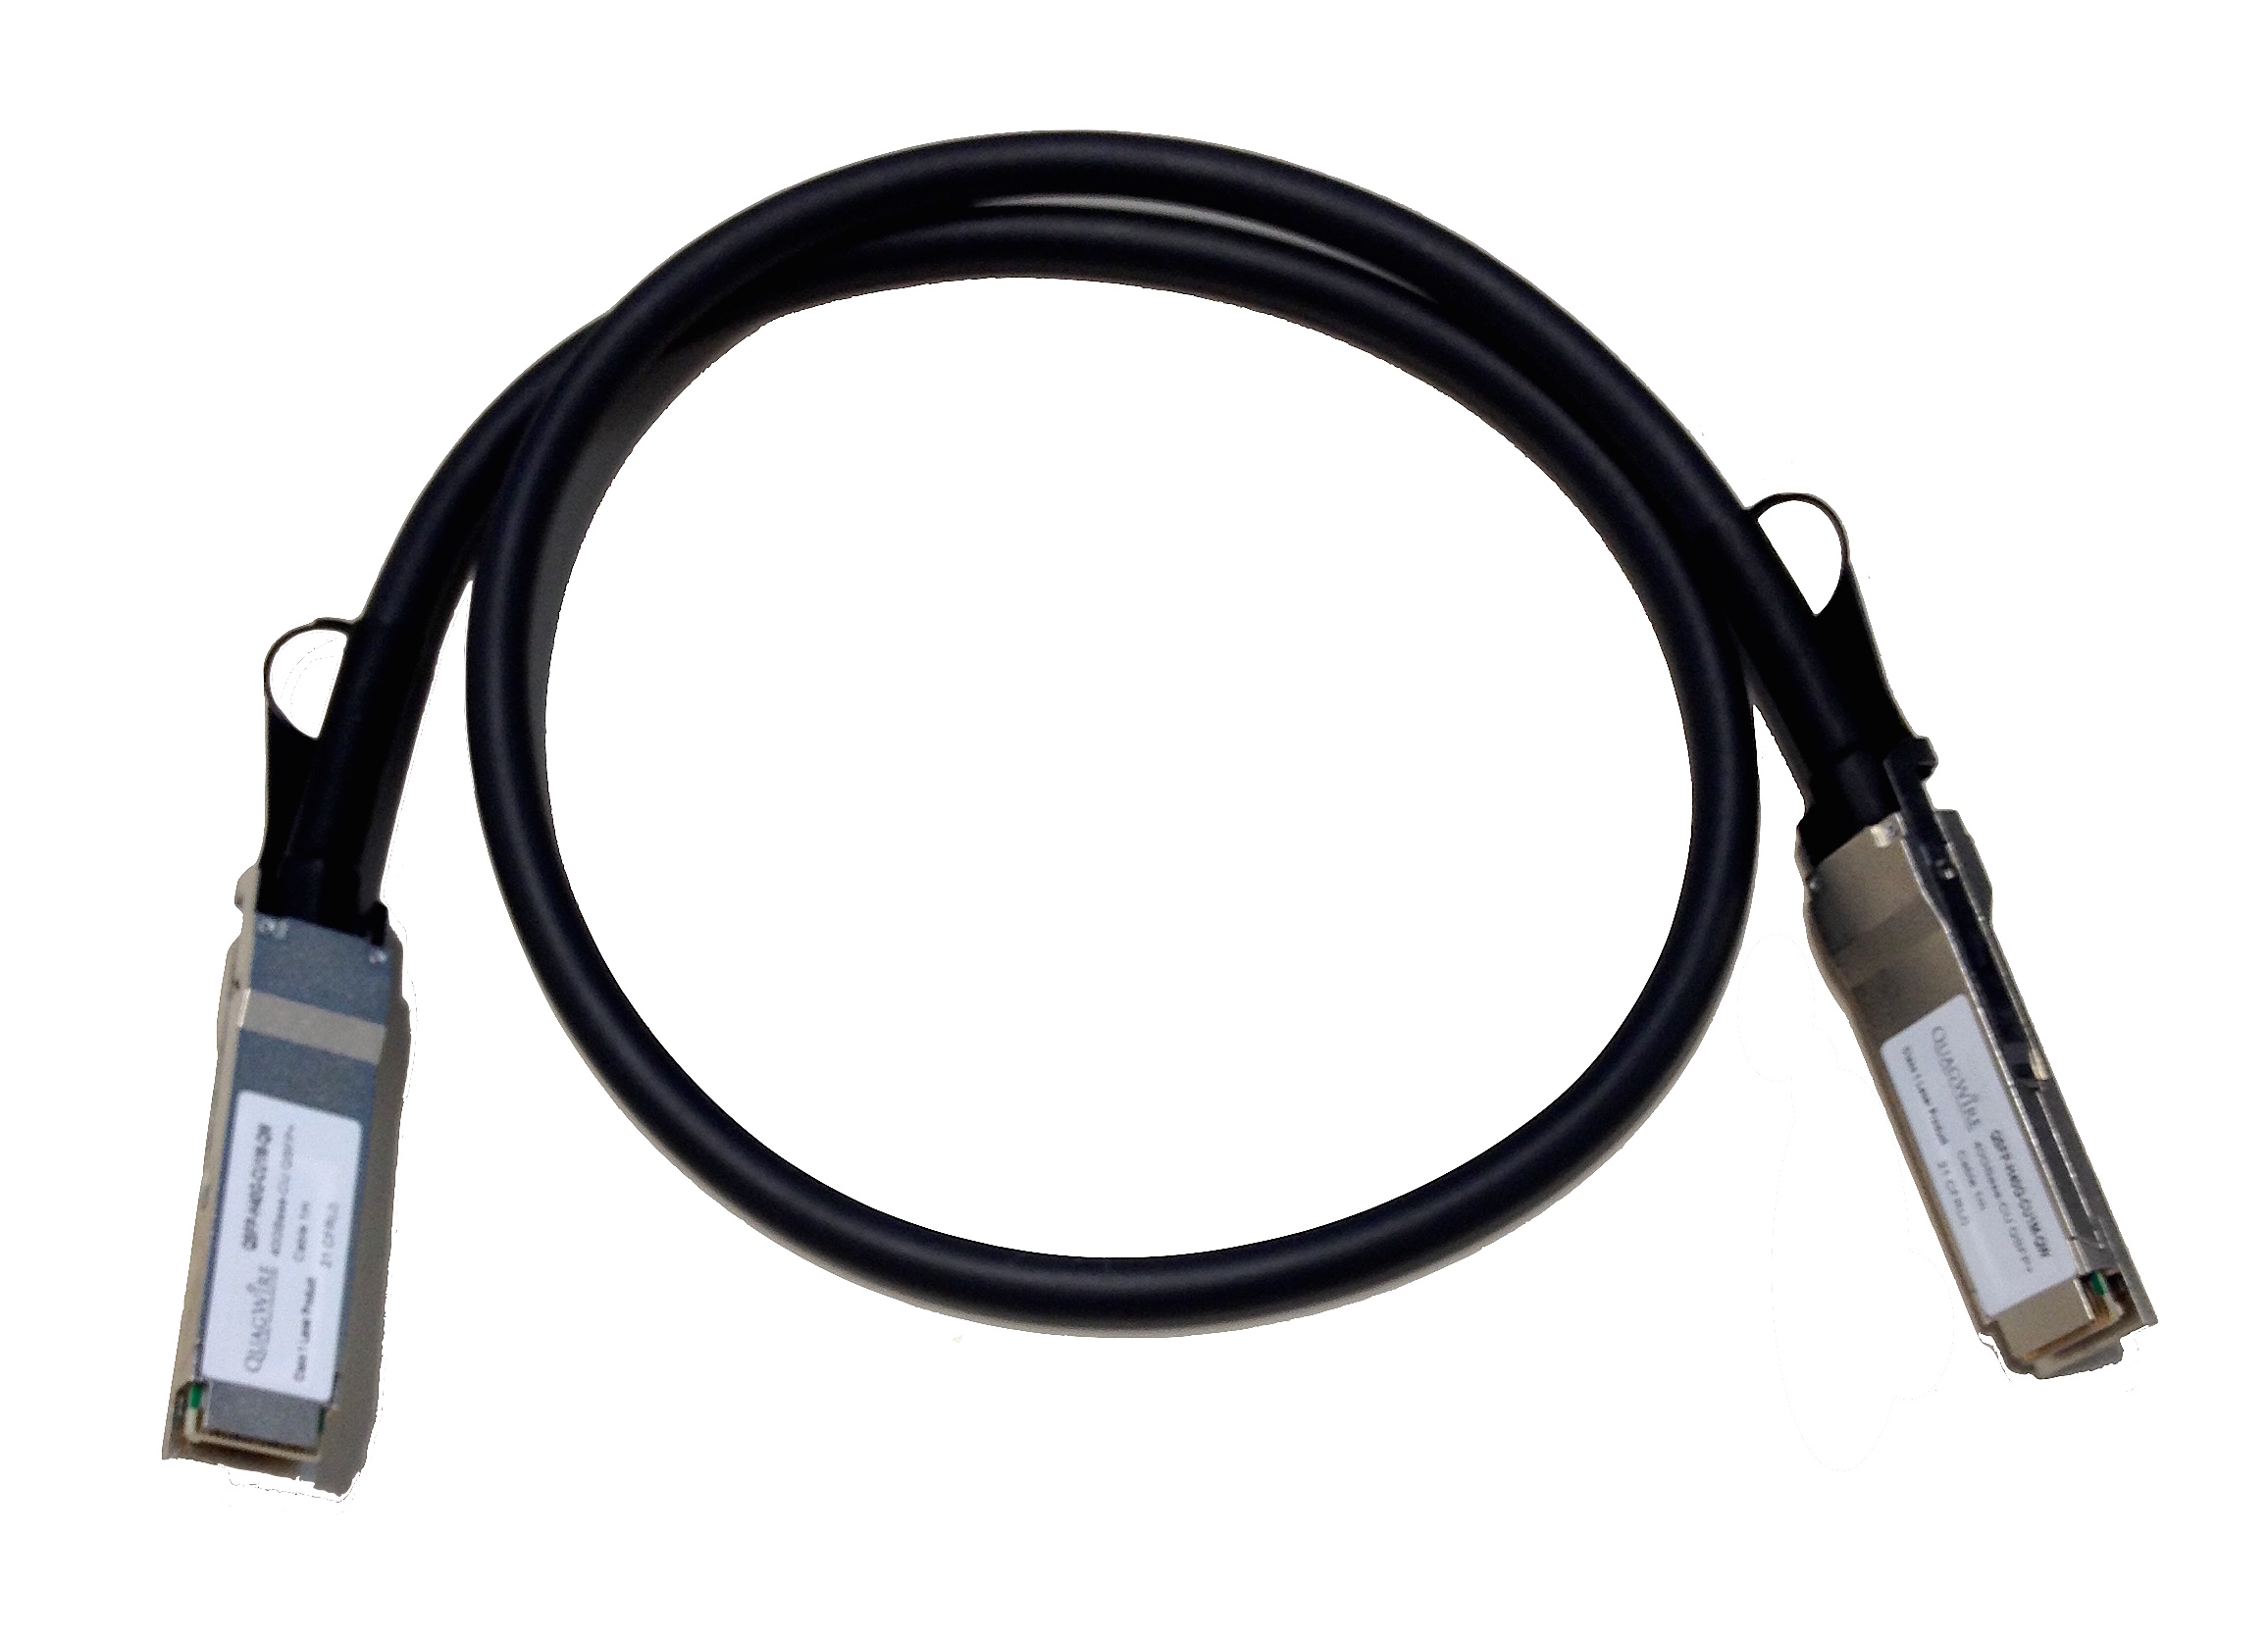 Avaya AA1403021-E6 SFP+ 10Gb 15m Direct-Attach Active Twinax Copper Cable (AA1403021-E6 Compatible)